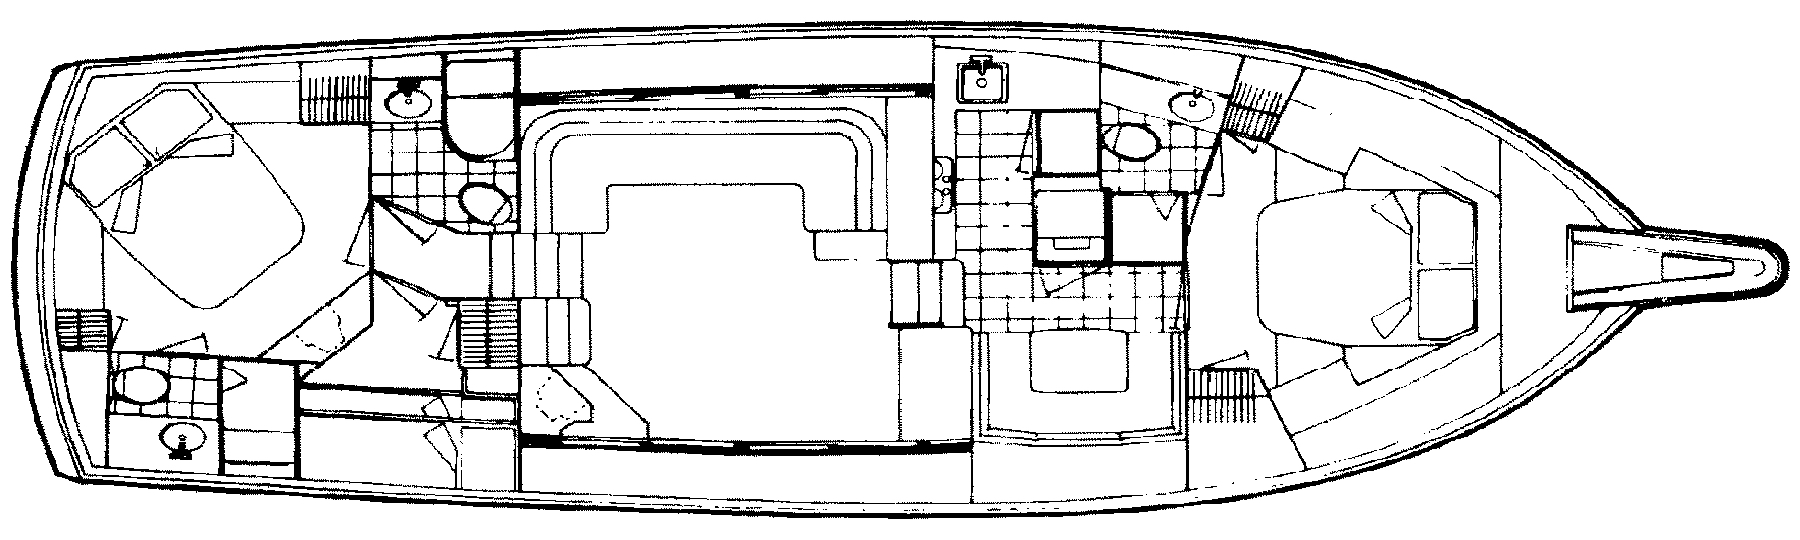 48 Motor Yacht Floor Plan 2